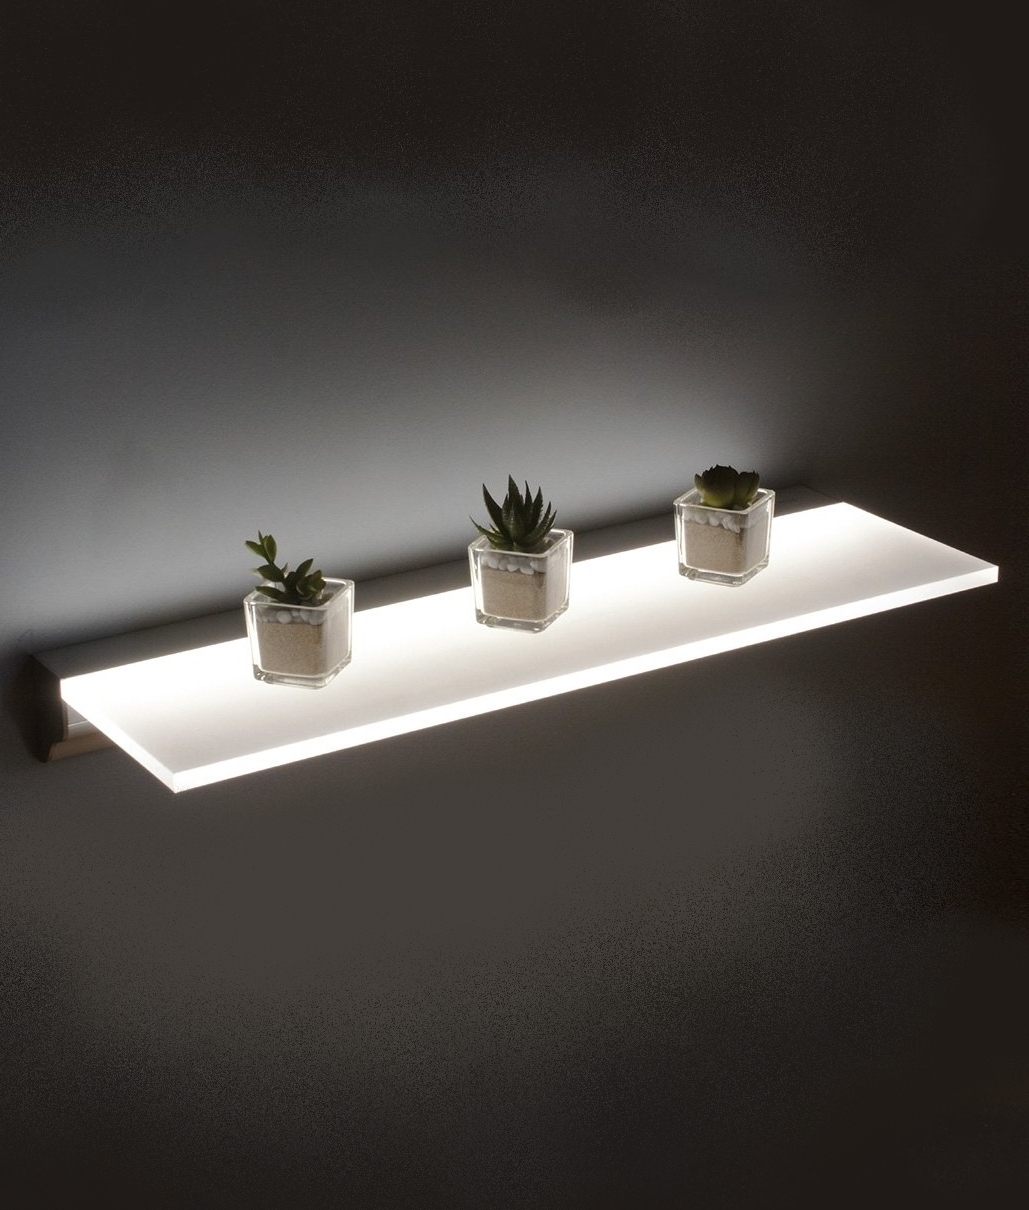 Led Opal Illuminated Shelf Two Sizes Intended For Illuminated Glass Shelves (Image 11 of 15)